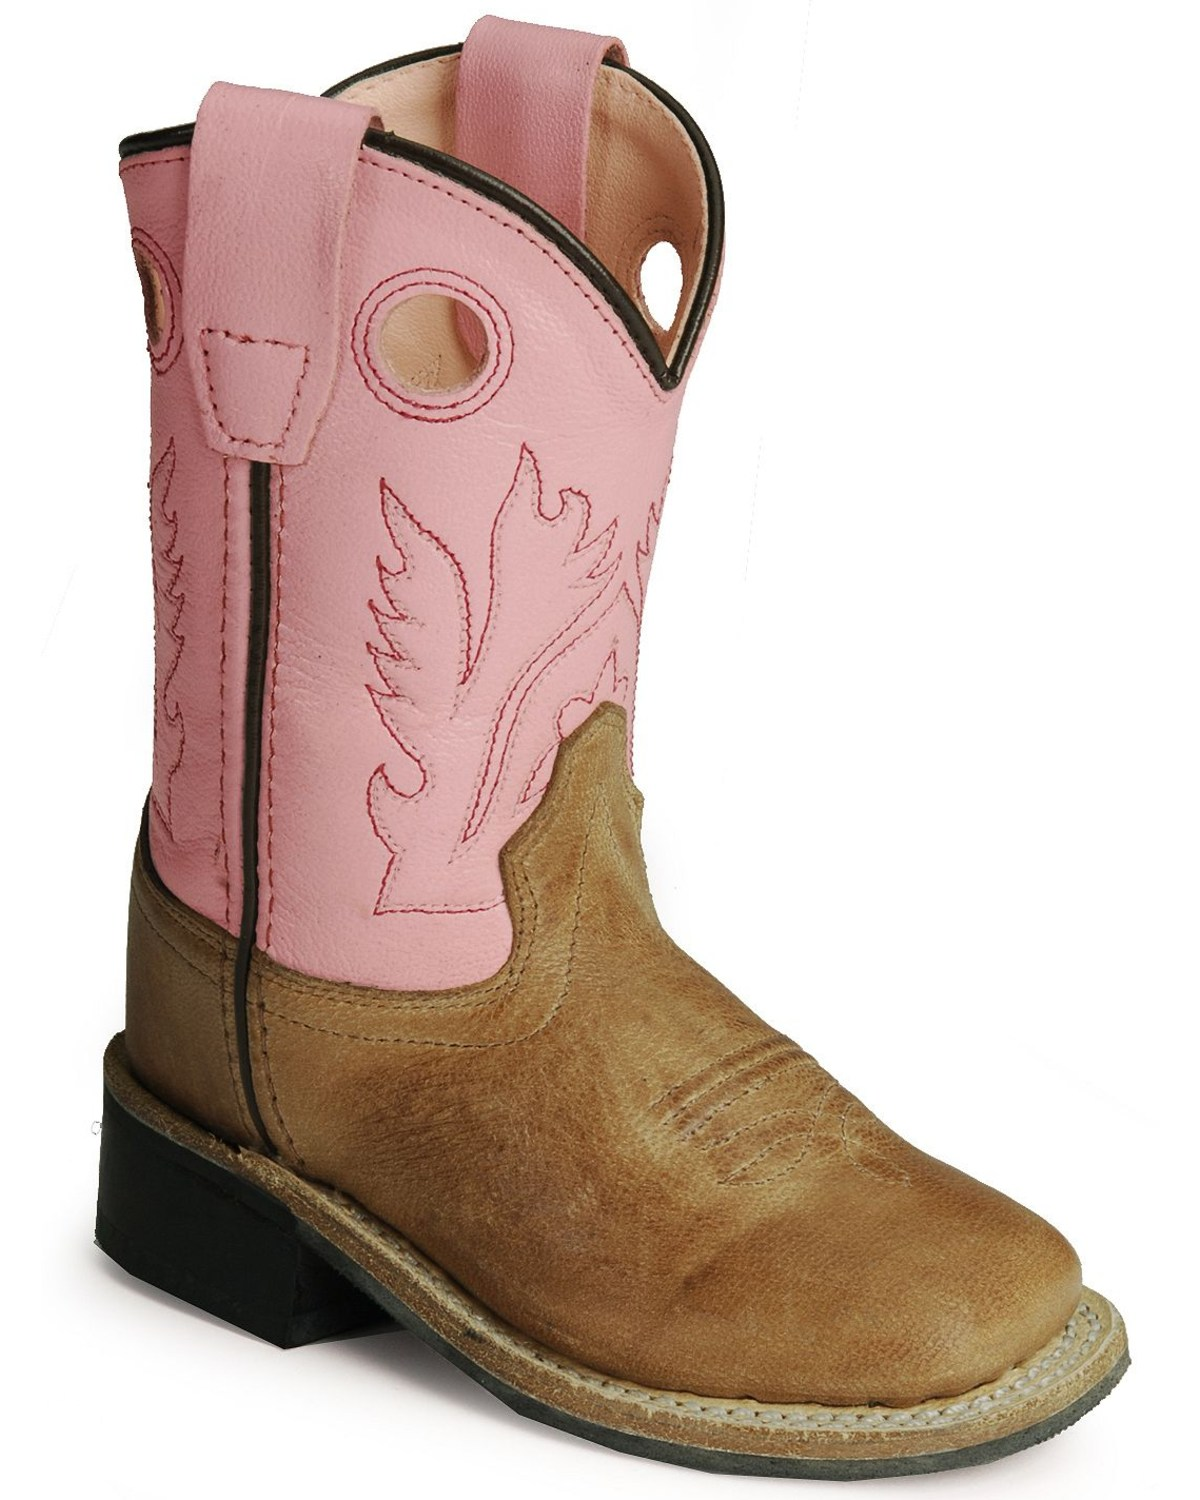 006e9d7be8c Old West Toddler Girls' Pink Cowgirl Boots - Square Toe